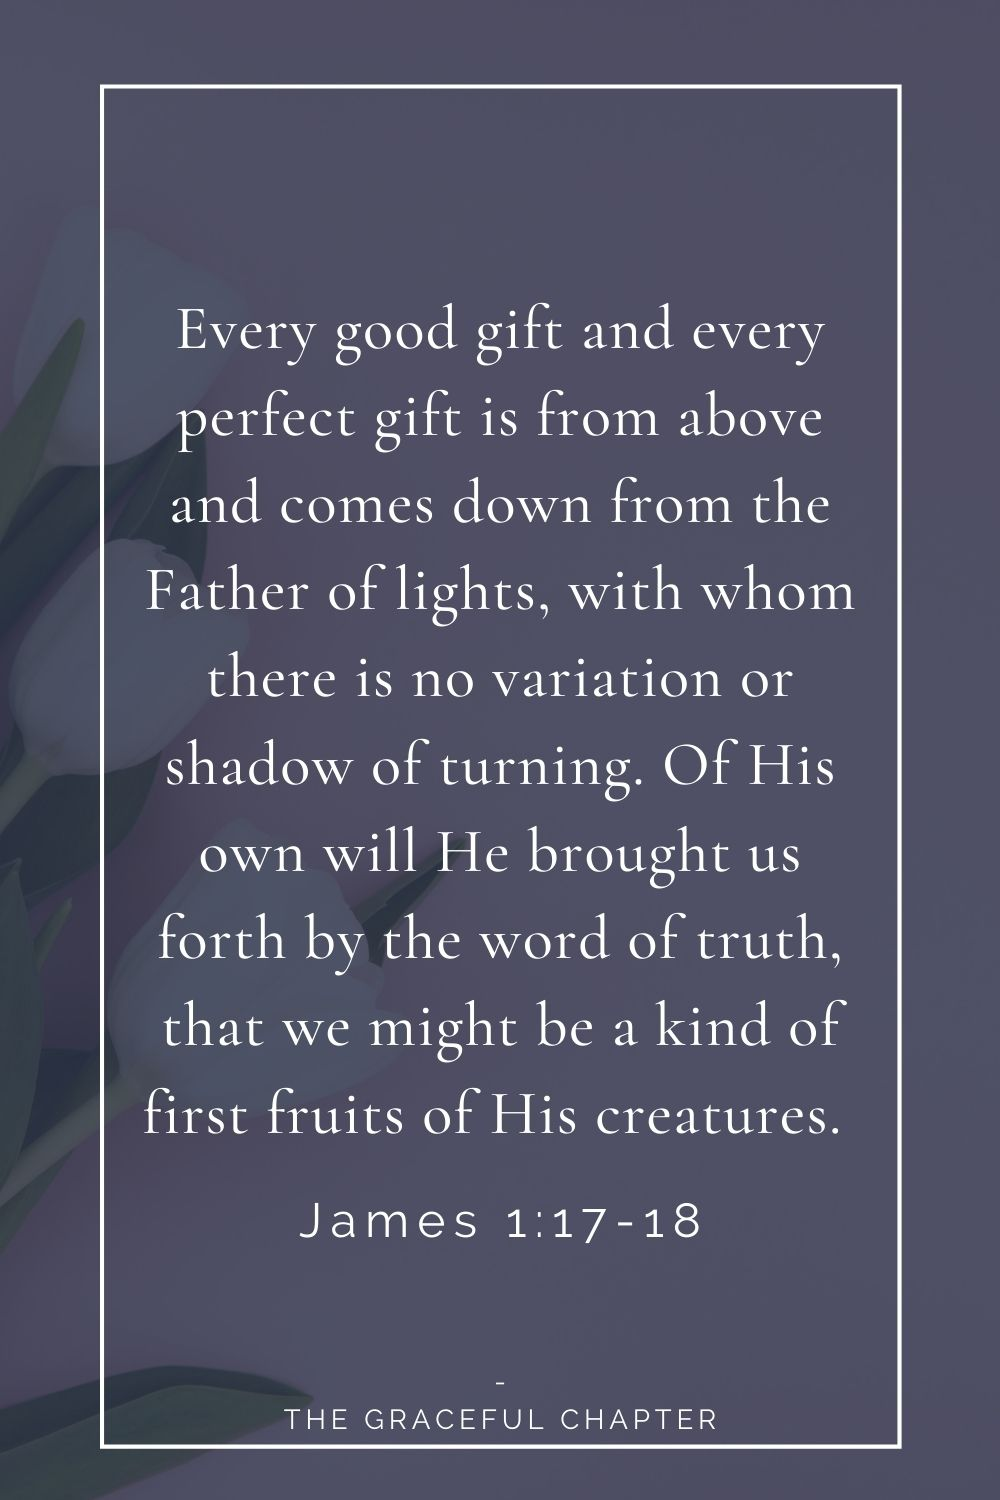 Every good gift and every perfect gift is from above and comes down from the Father of lights, with whom there is no variation or shadow of turning. Of His own will He brought us forth by the word of truth, that we might be a kind of first fruits of His creatures.  James 1:17-18